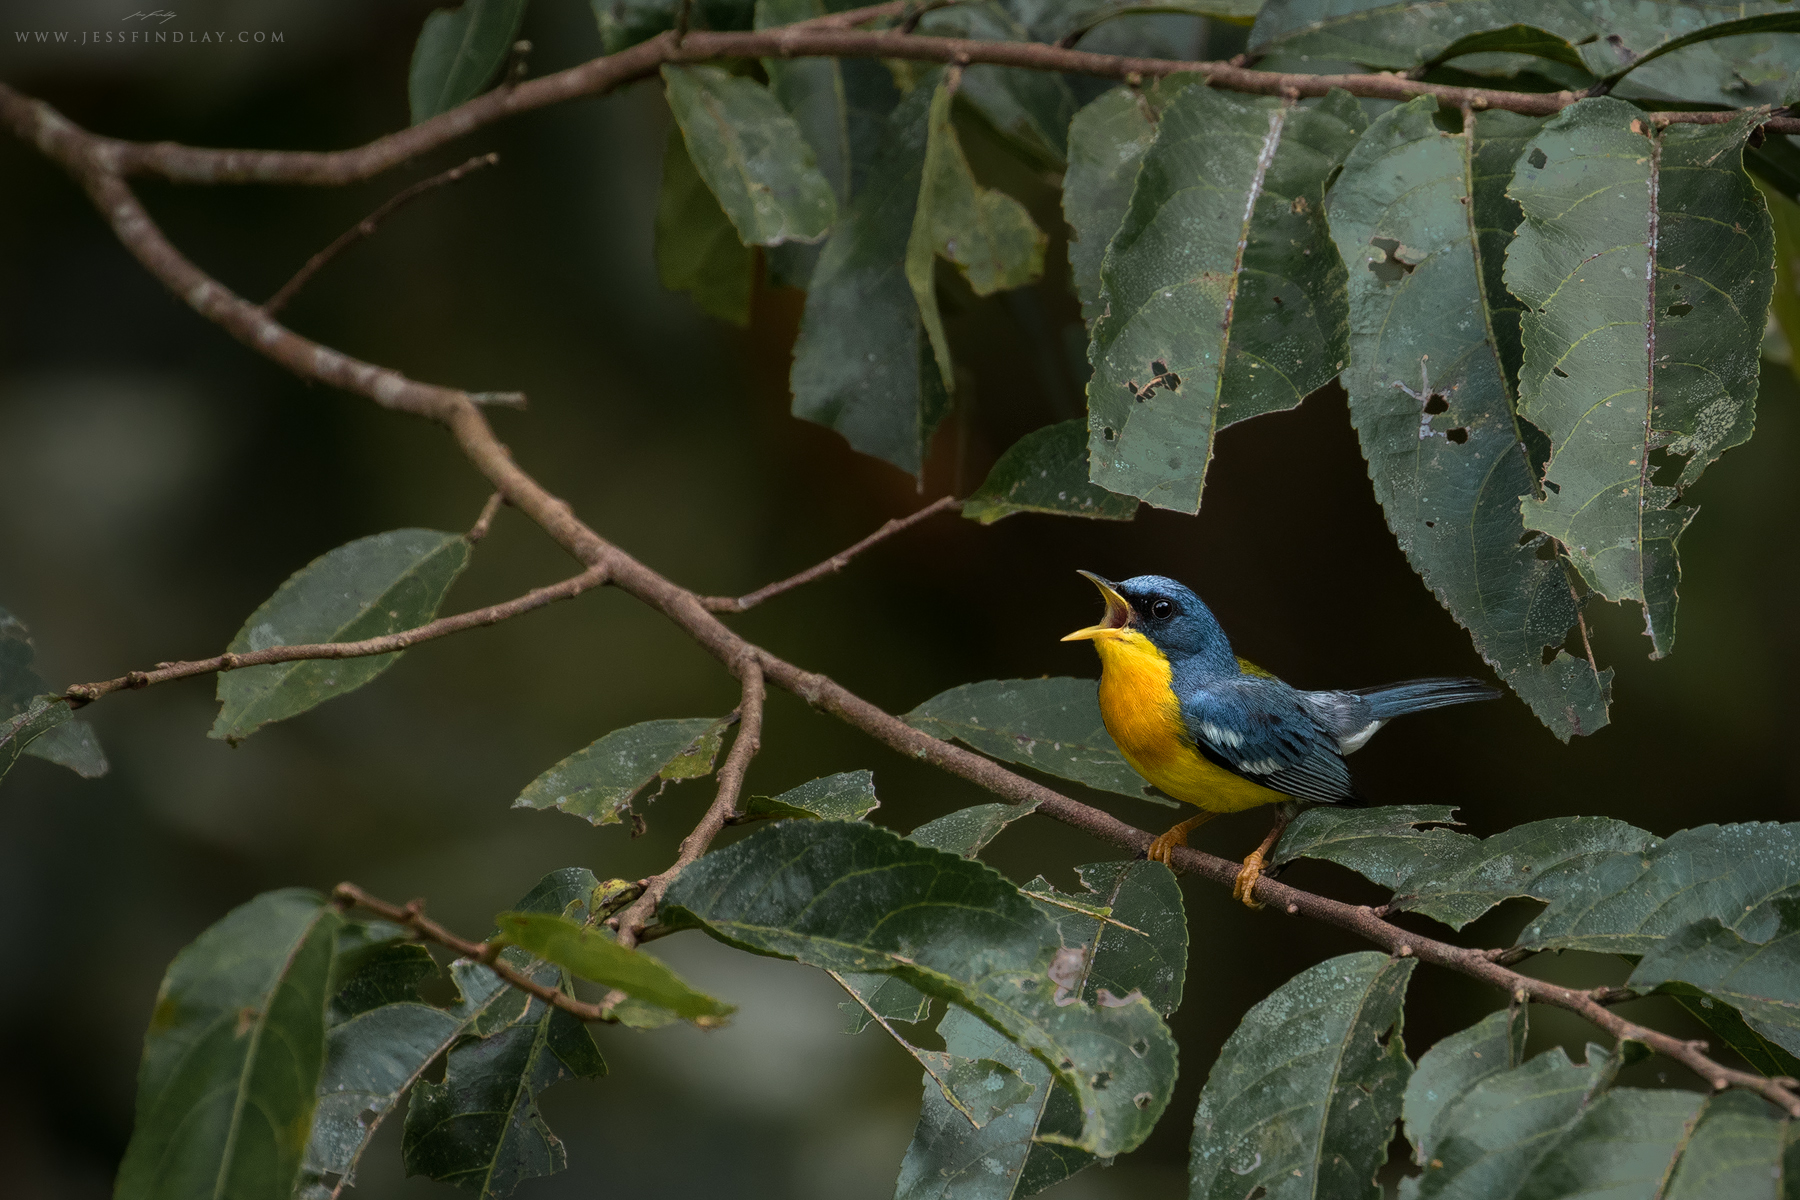 A tiny, vibrant Tropical Parula sings out emphatically from the forest.